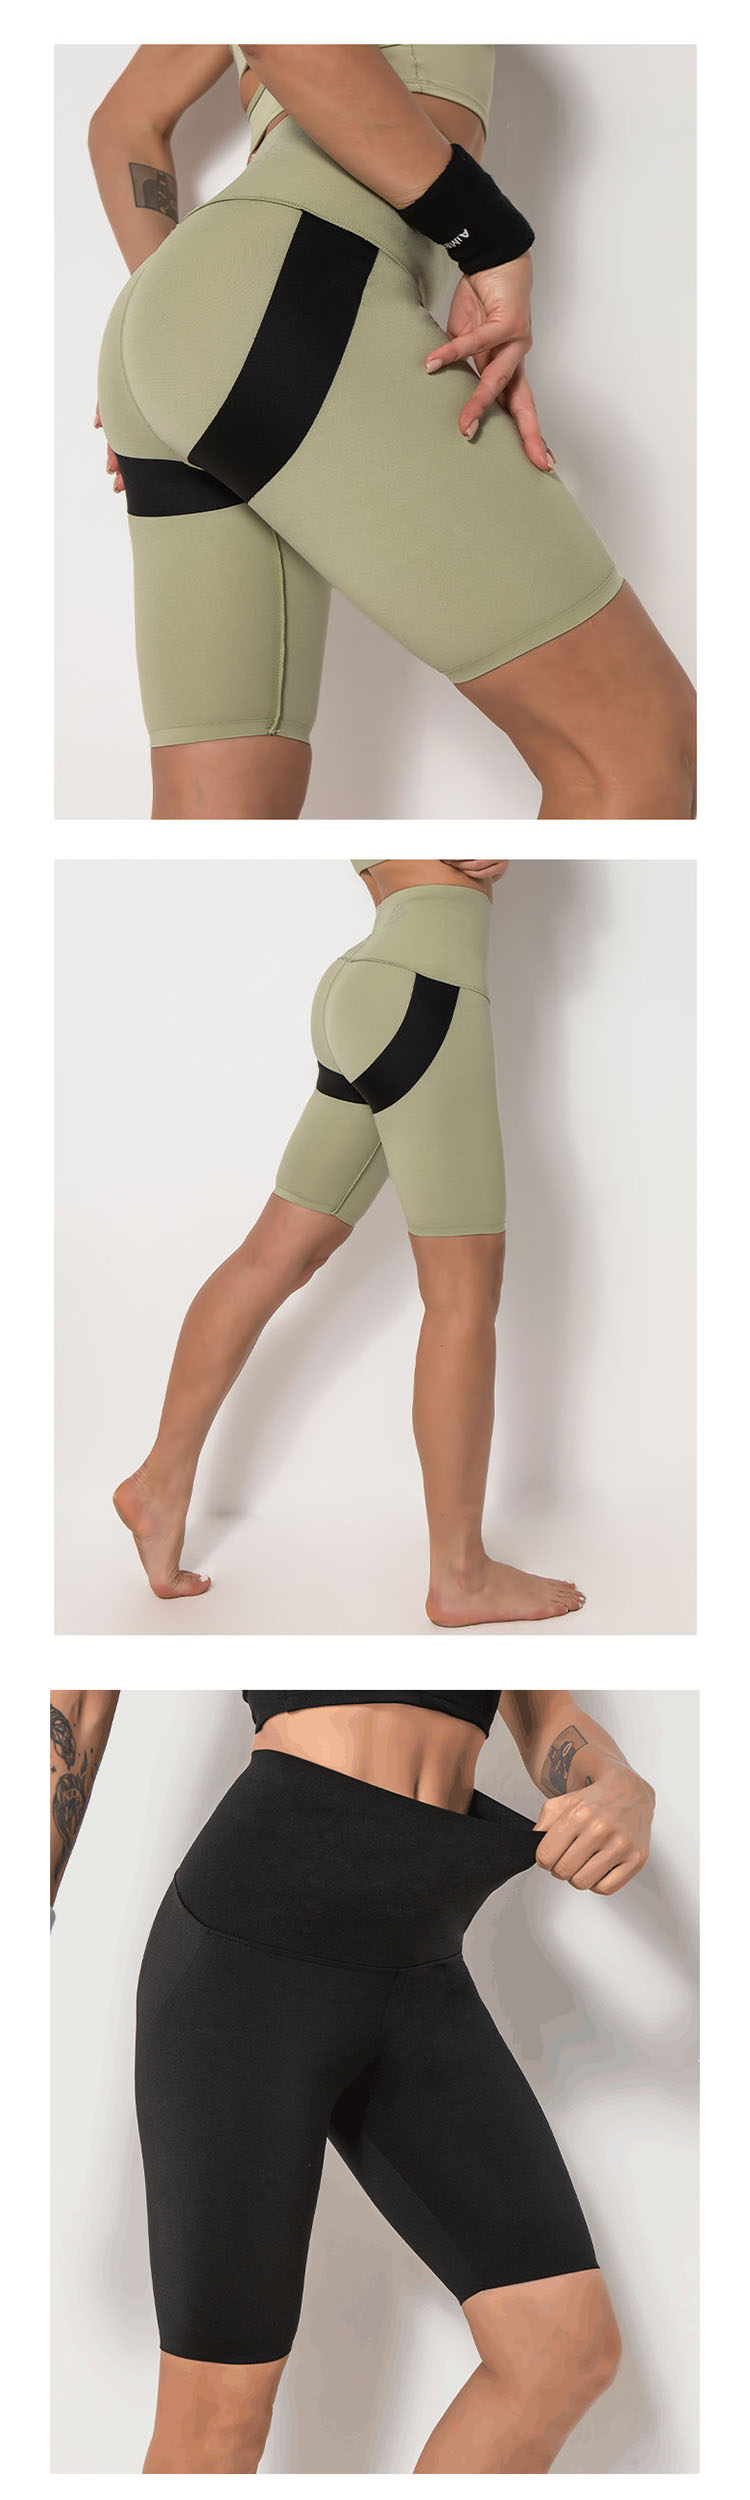 Double structure hip line design, highlighting the full buttocks.